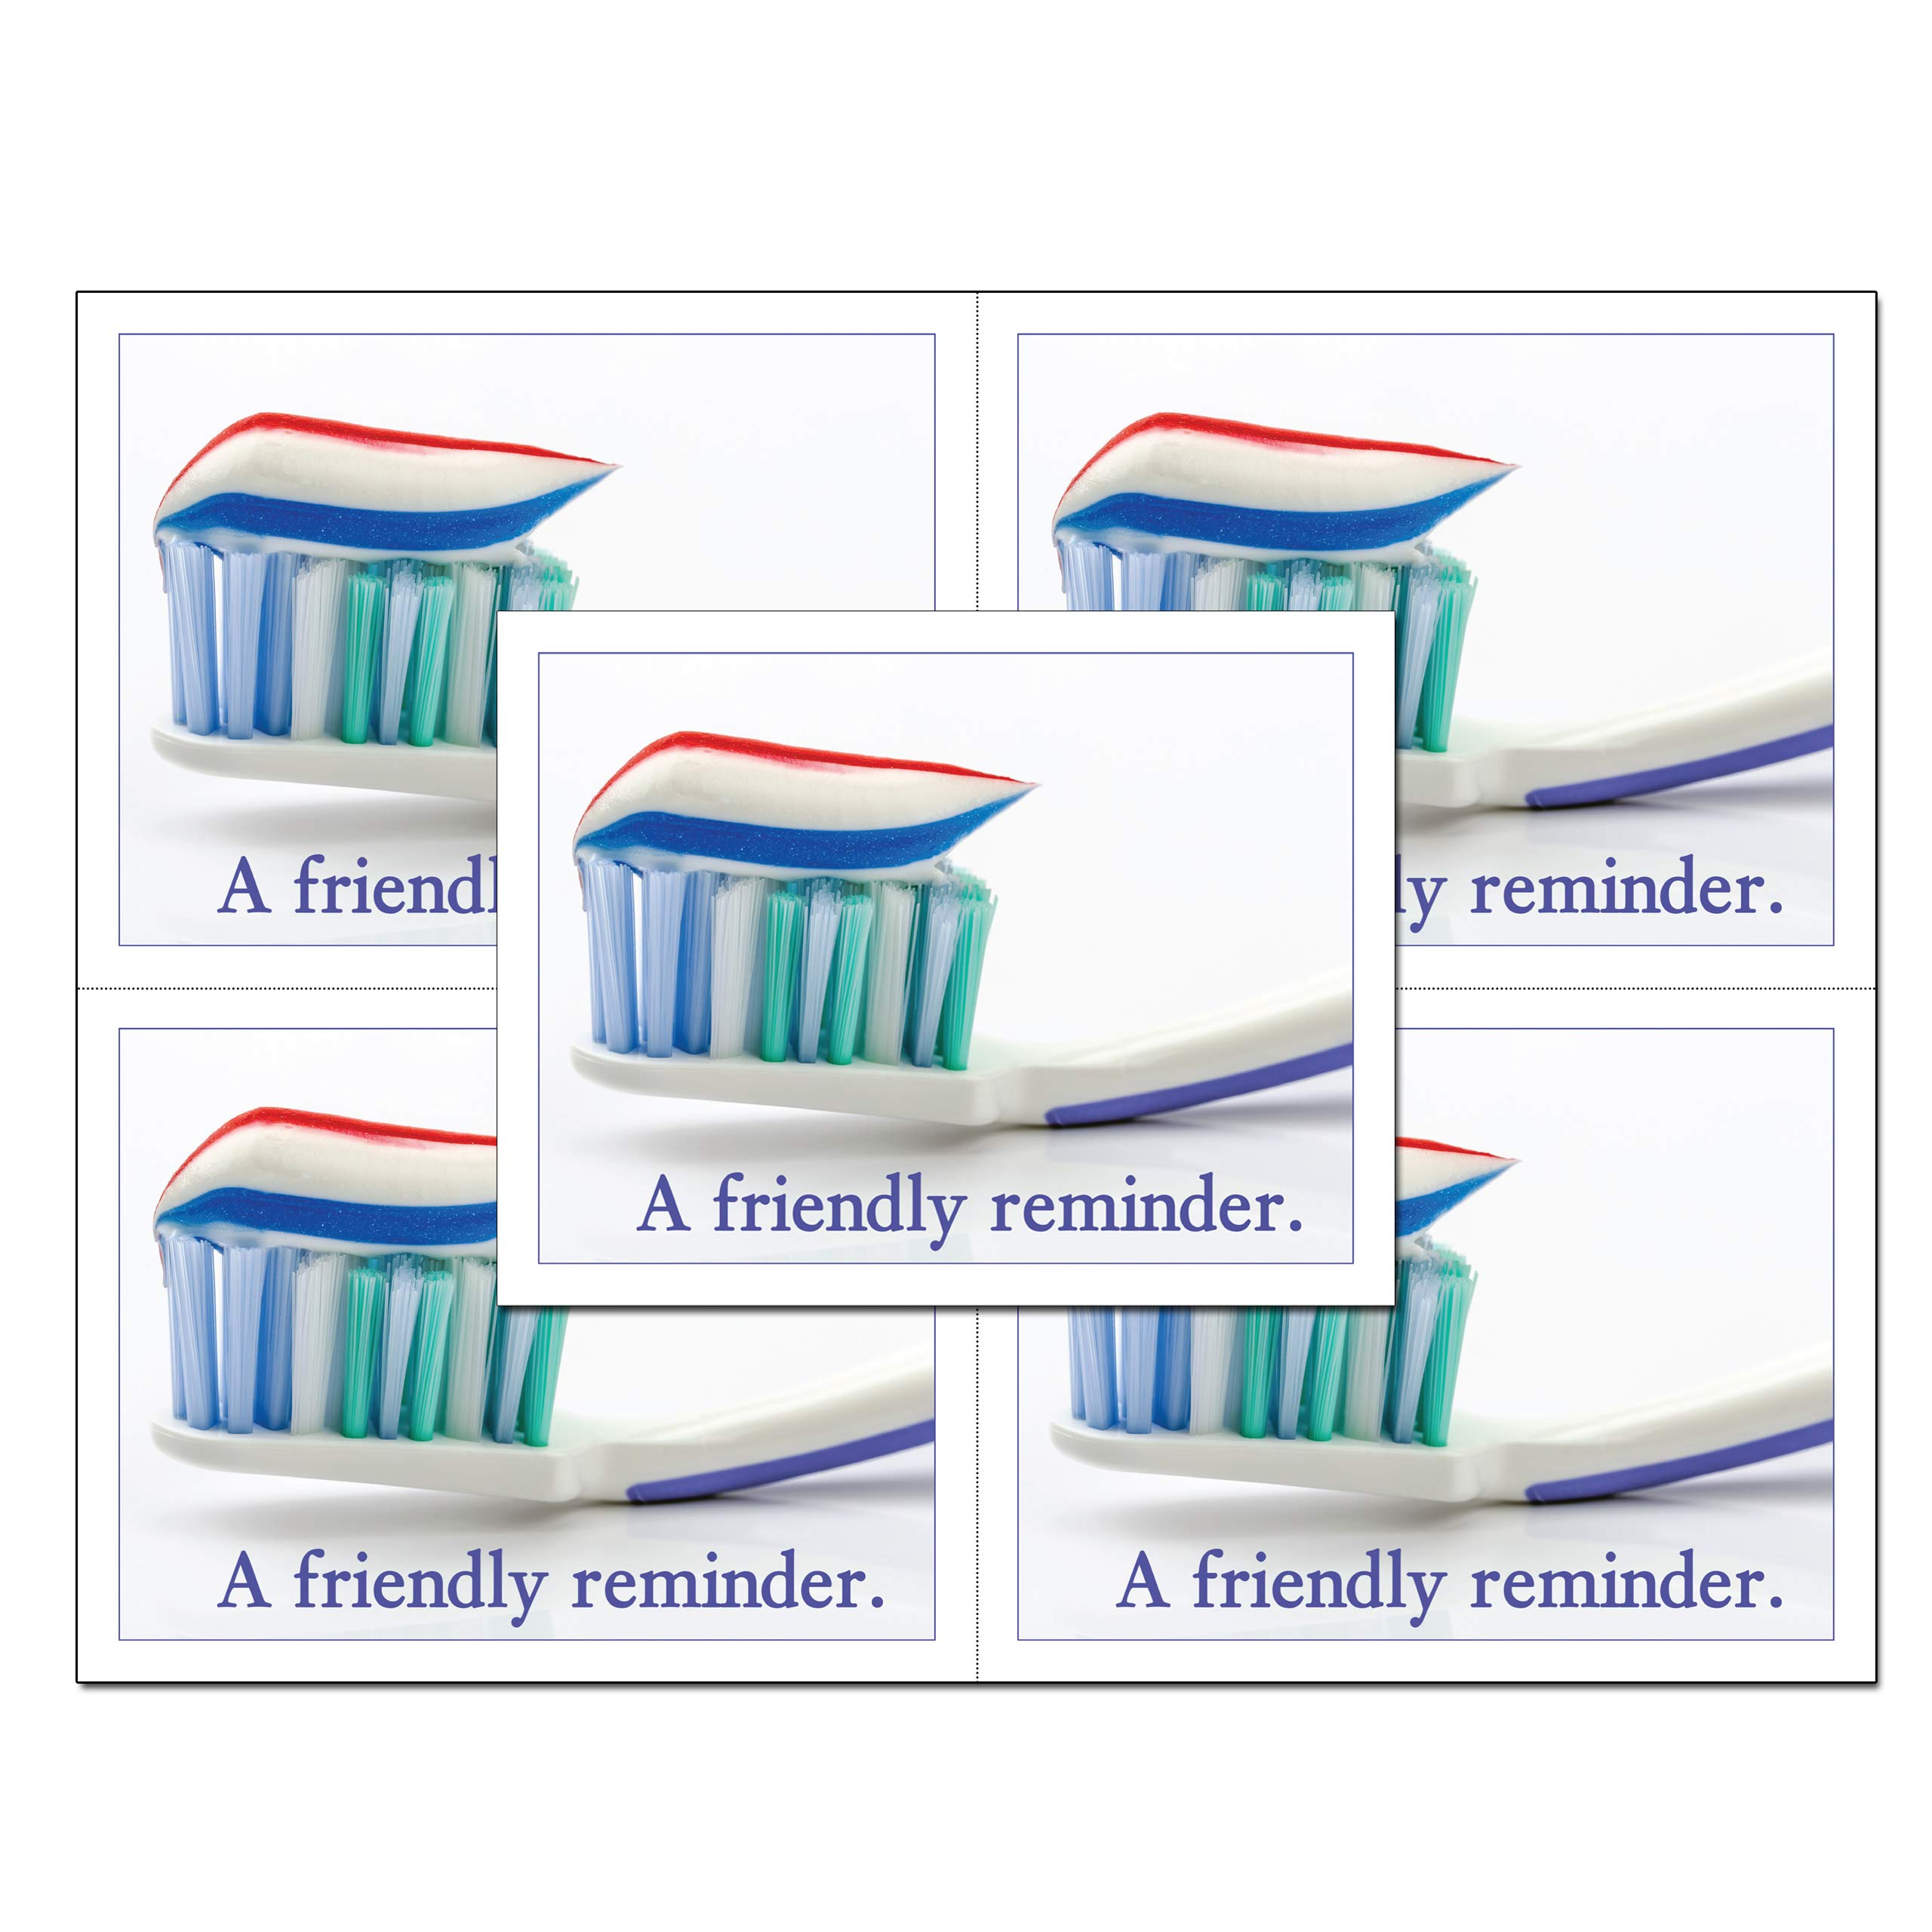 Laser Reminder Postcards, Dental Appointment Reminder Postcards. 4 Cards Perforated for Tear-off at 4.25'' x 5.5'' on an 8.5'' x 11'' Sheet of 8 Pt Card Stock. (1000)